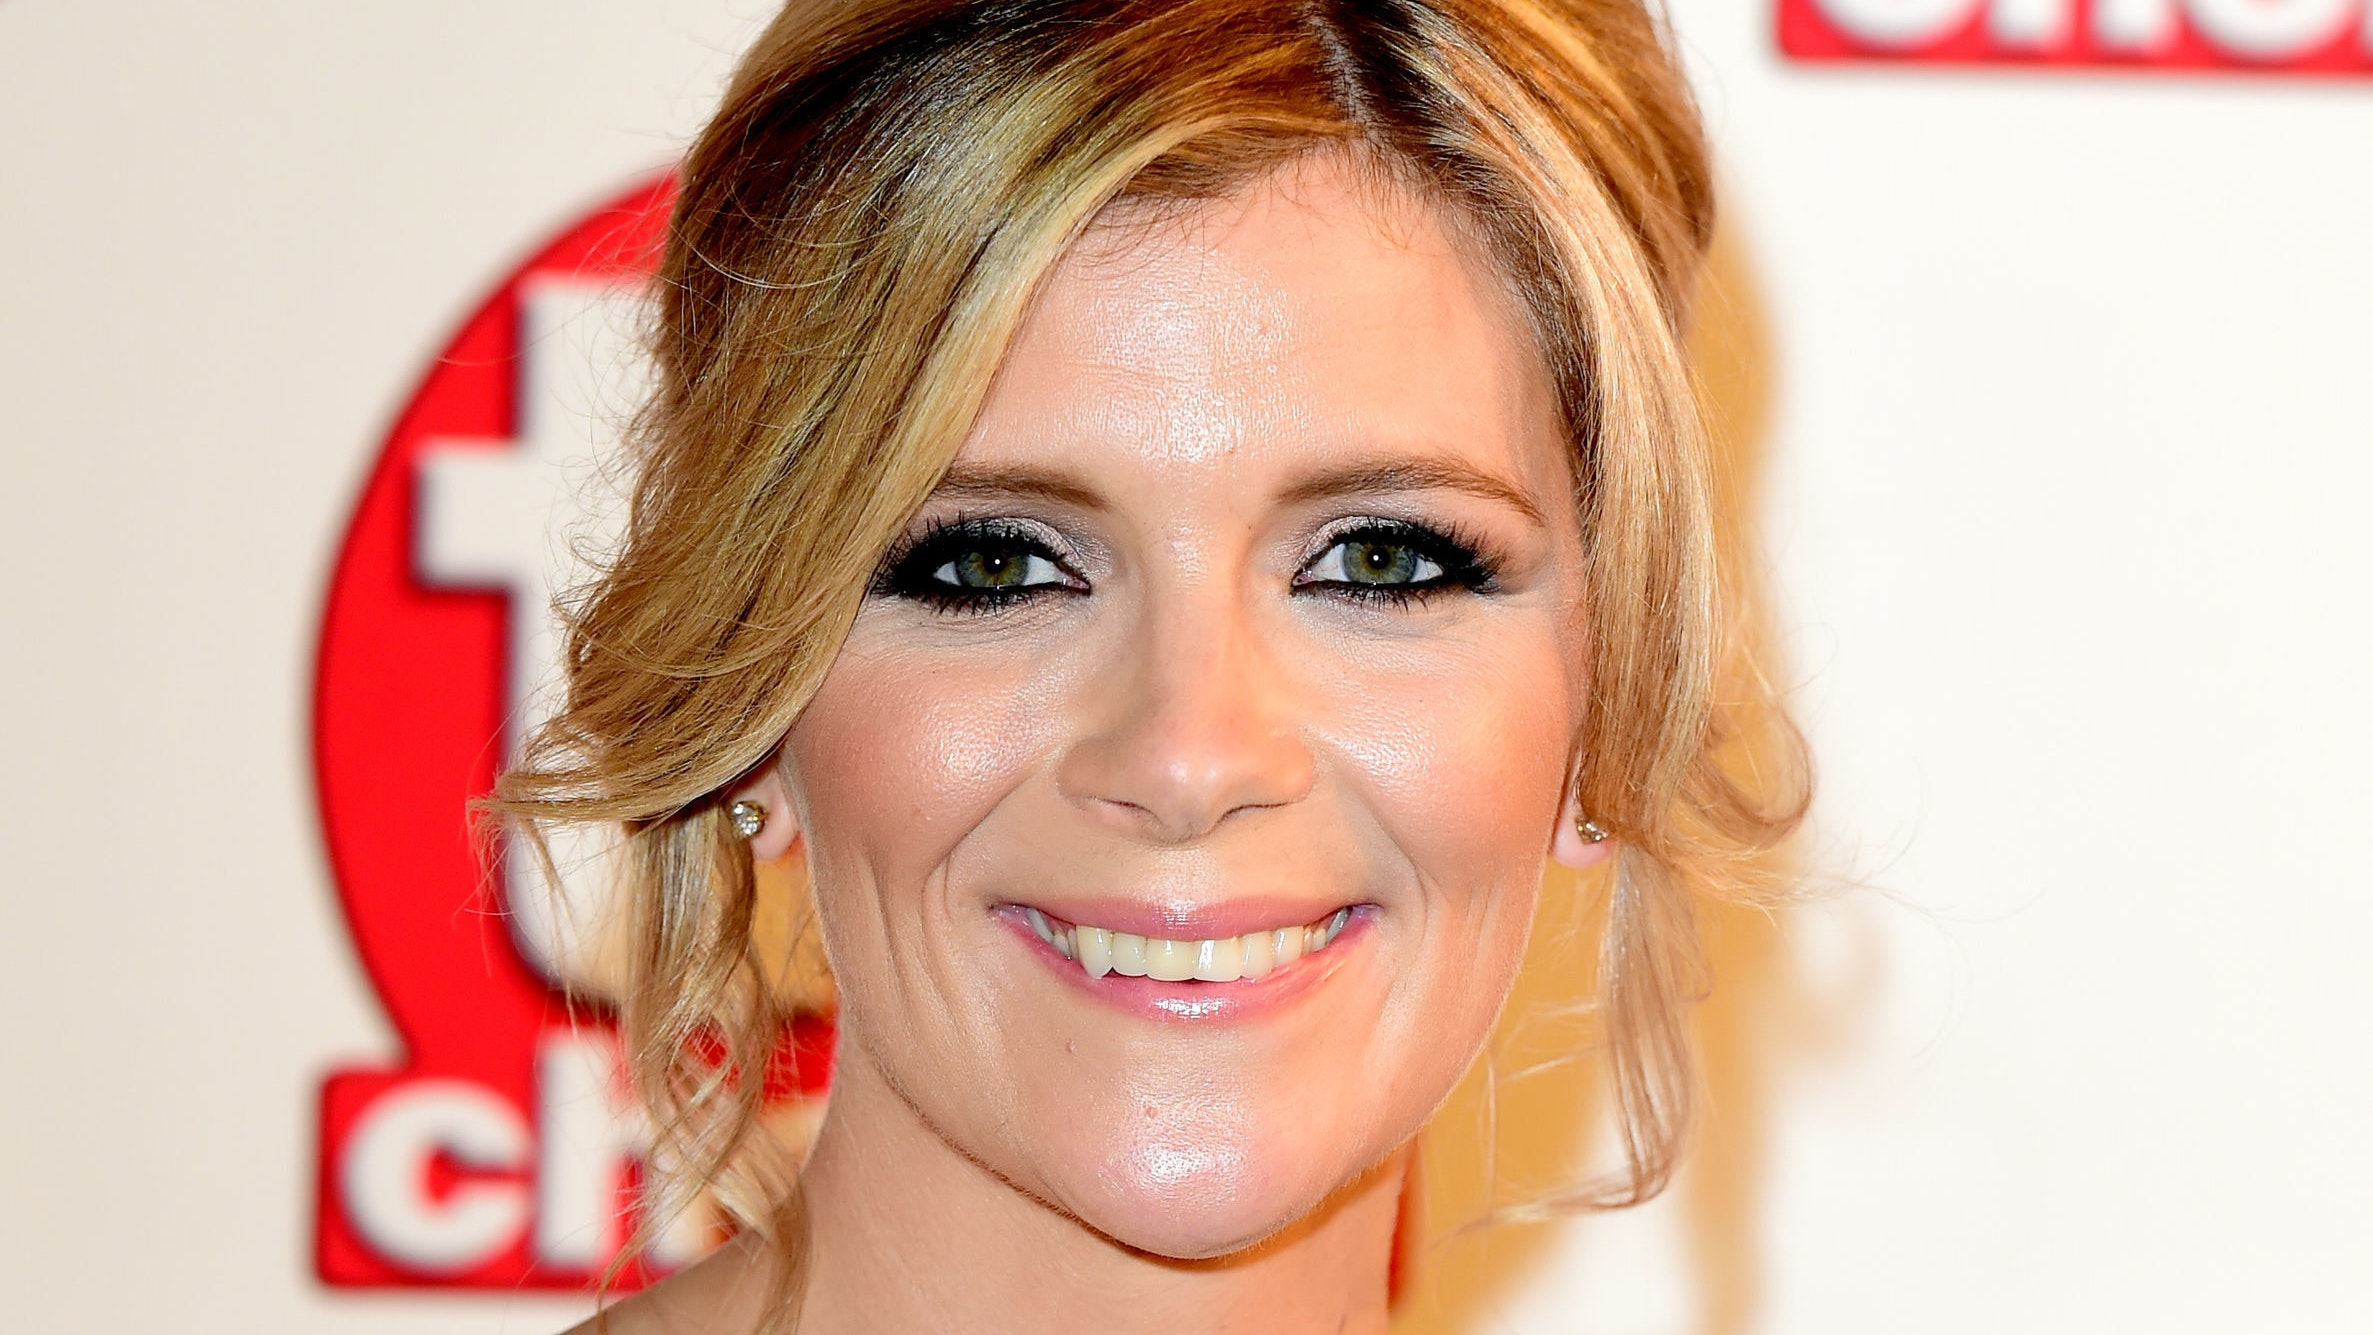 Corries Jane Danson Dancing On Ice Was Too Good An Opportunity To